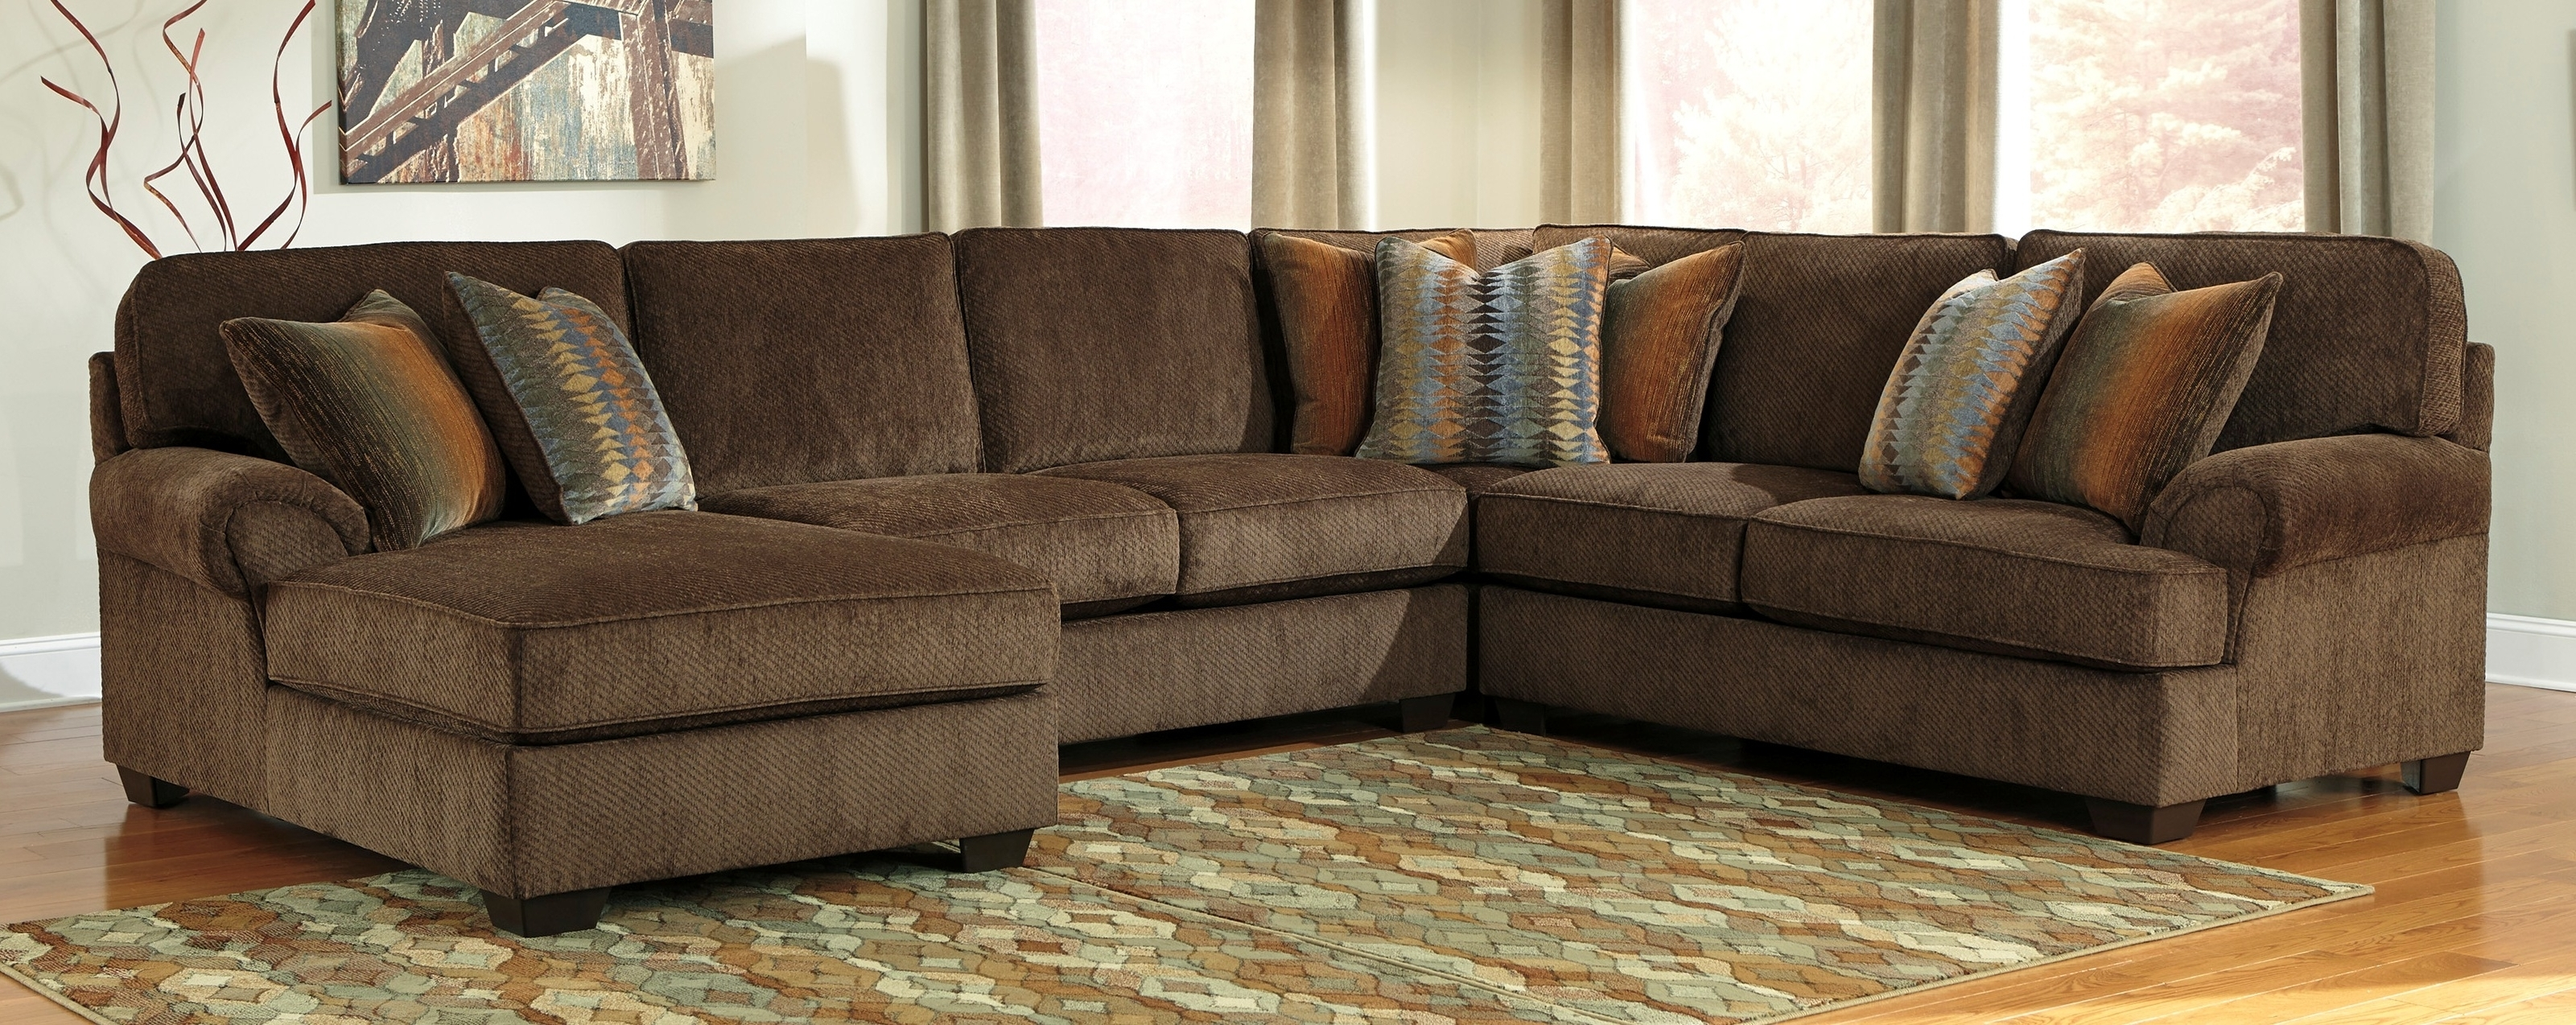 Buy Ashley Furniture 9171055 9171077 9171034 9171017 Denning For Widely Used Ashley Furniture Chaise Sofas (View 9 of 15)